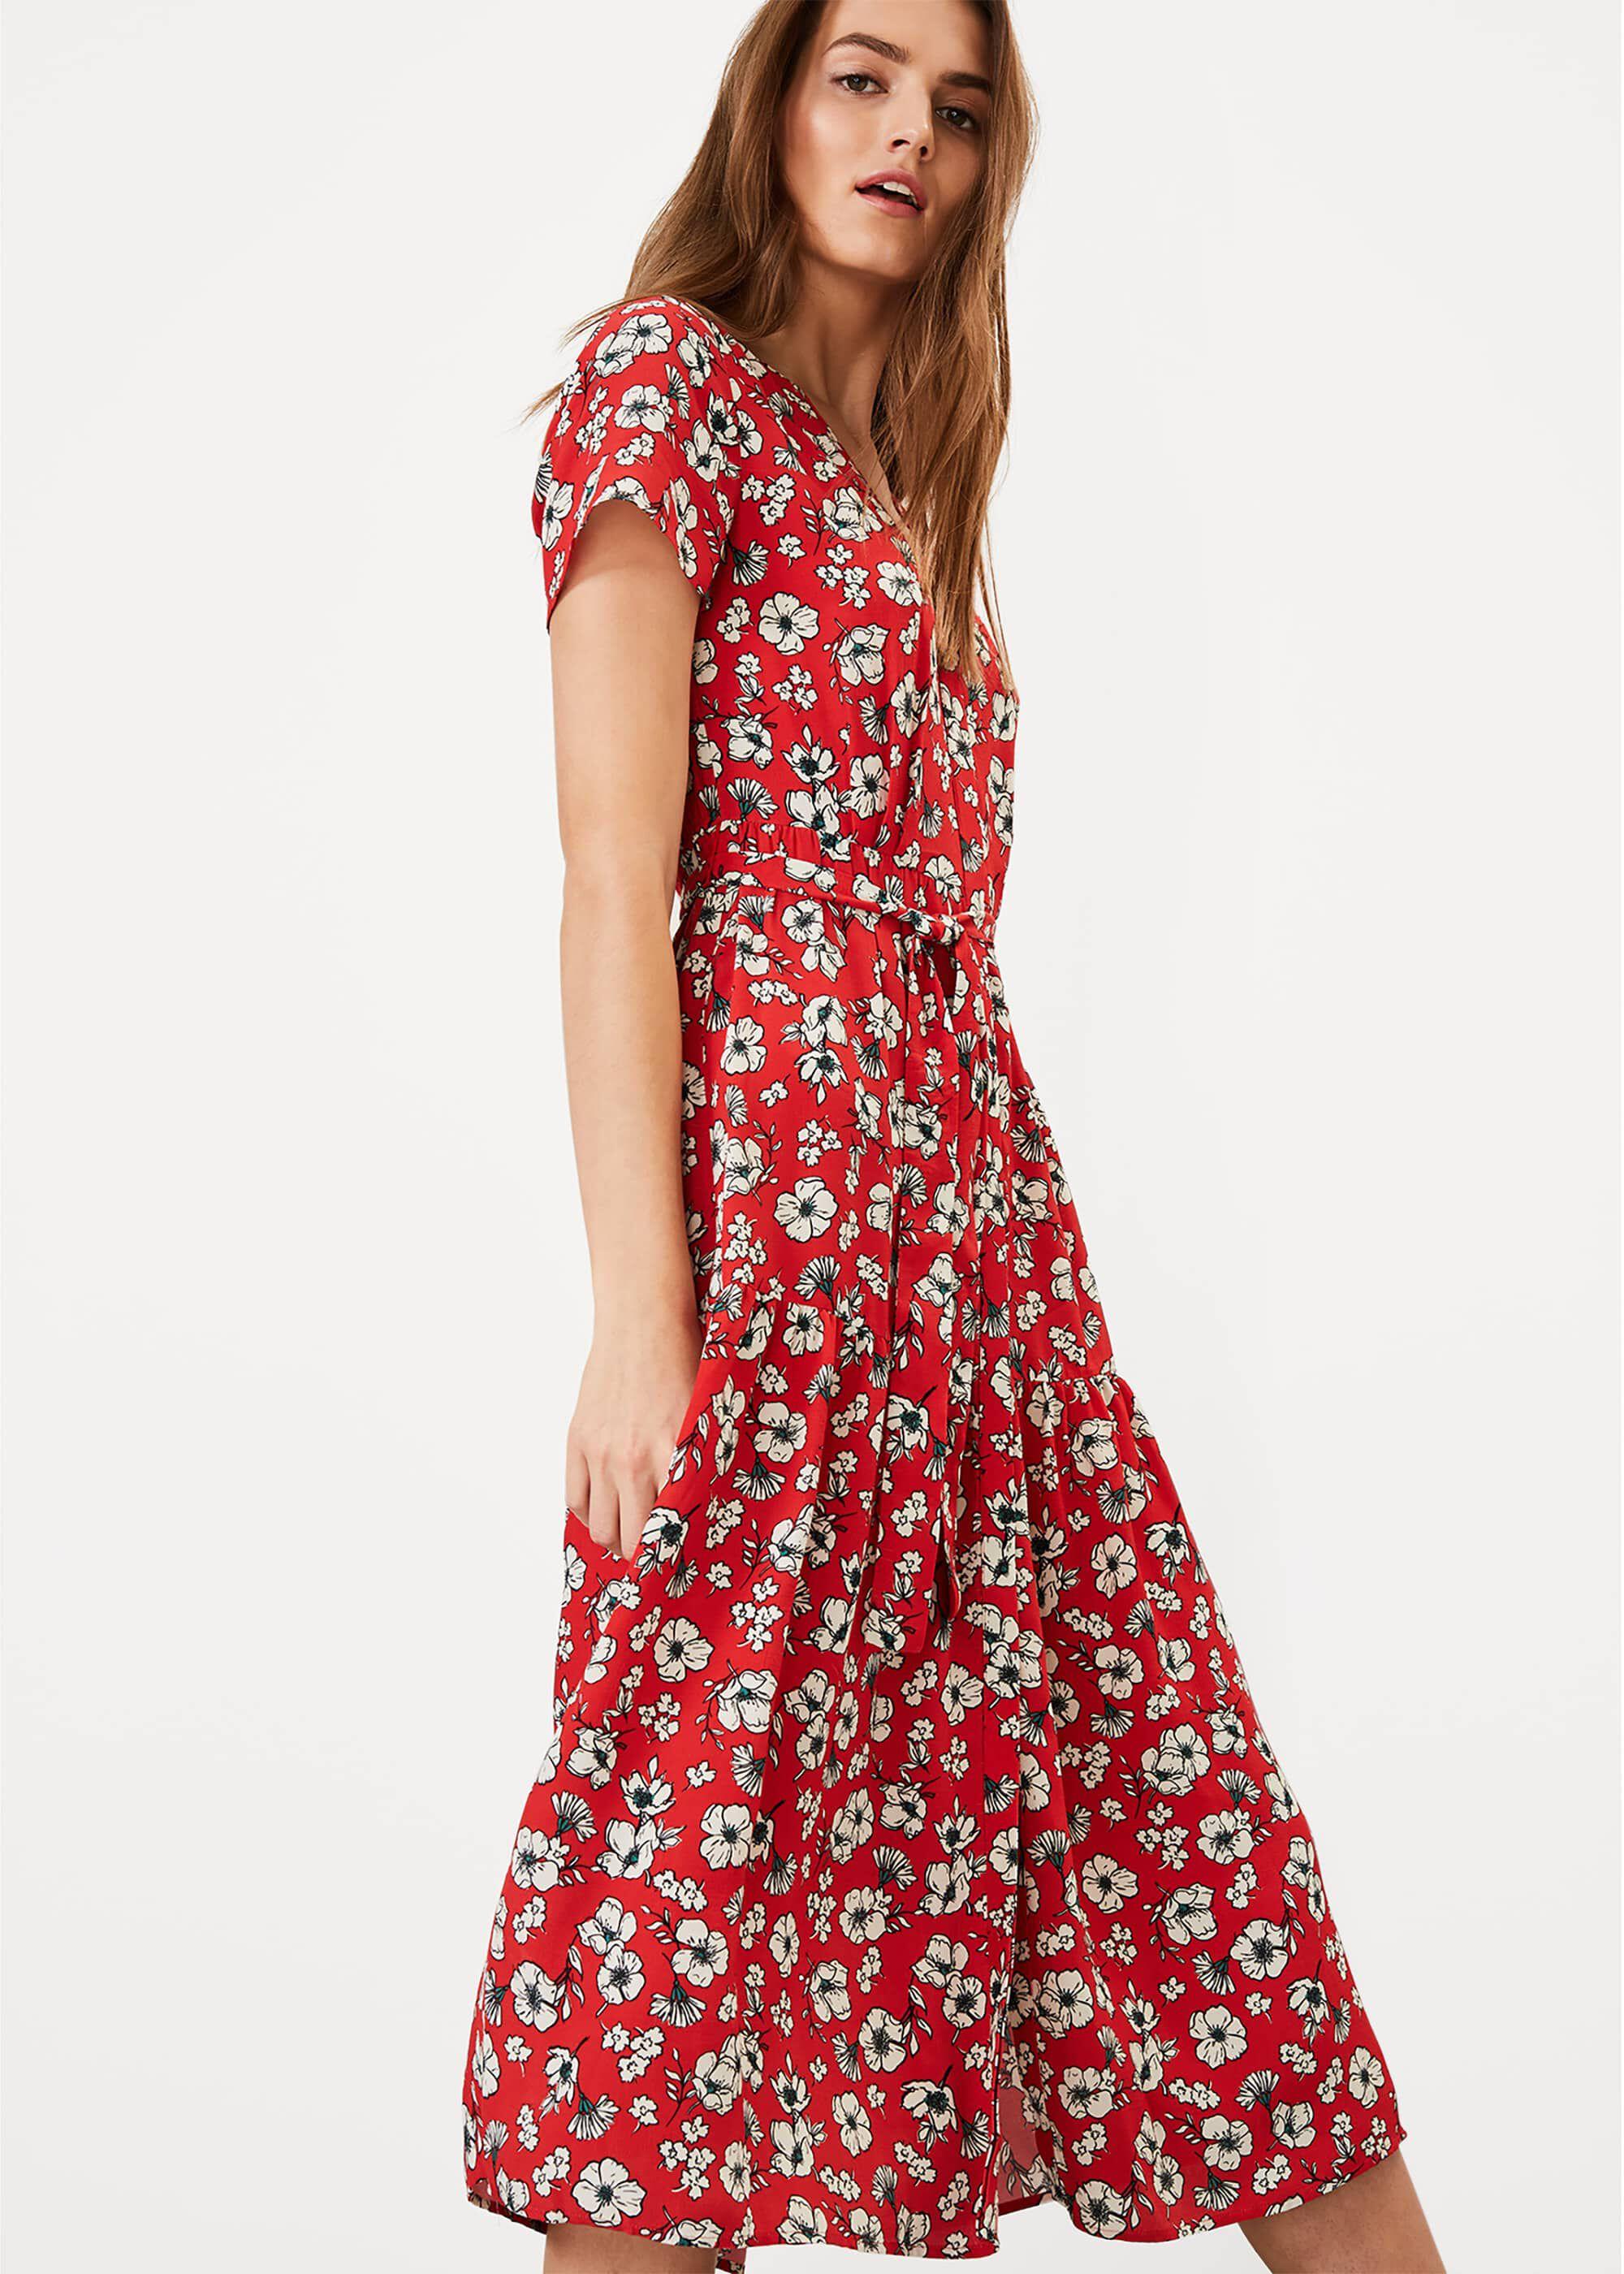 Phase Eight Daisy Floral Dress, Red, Shirt